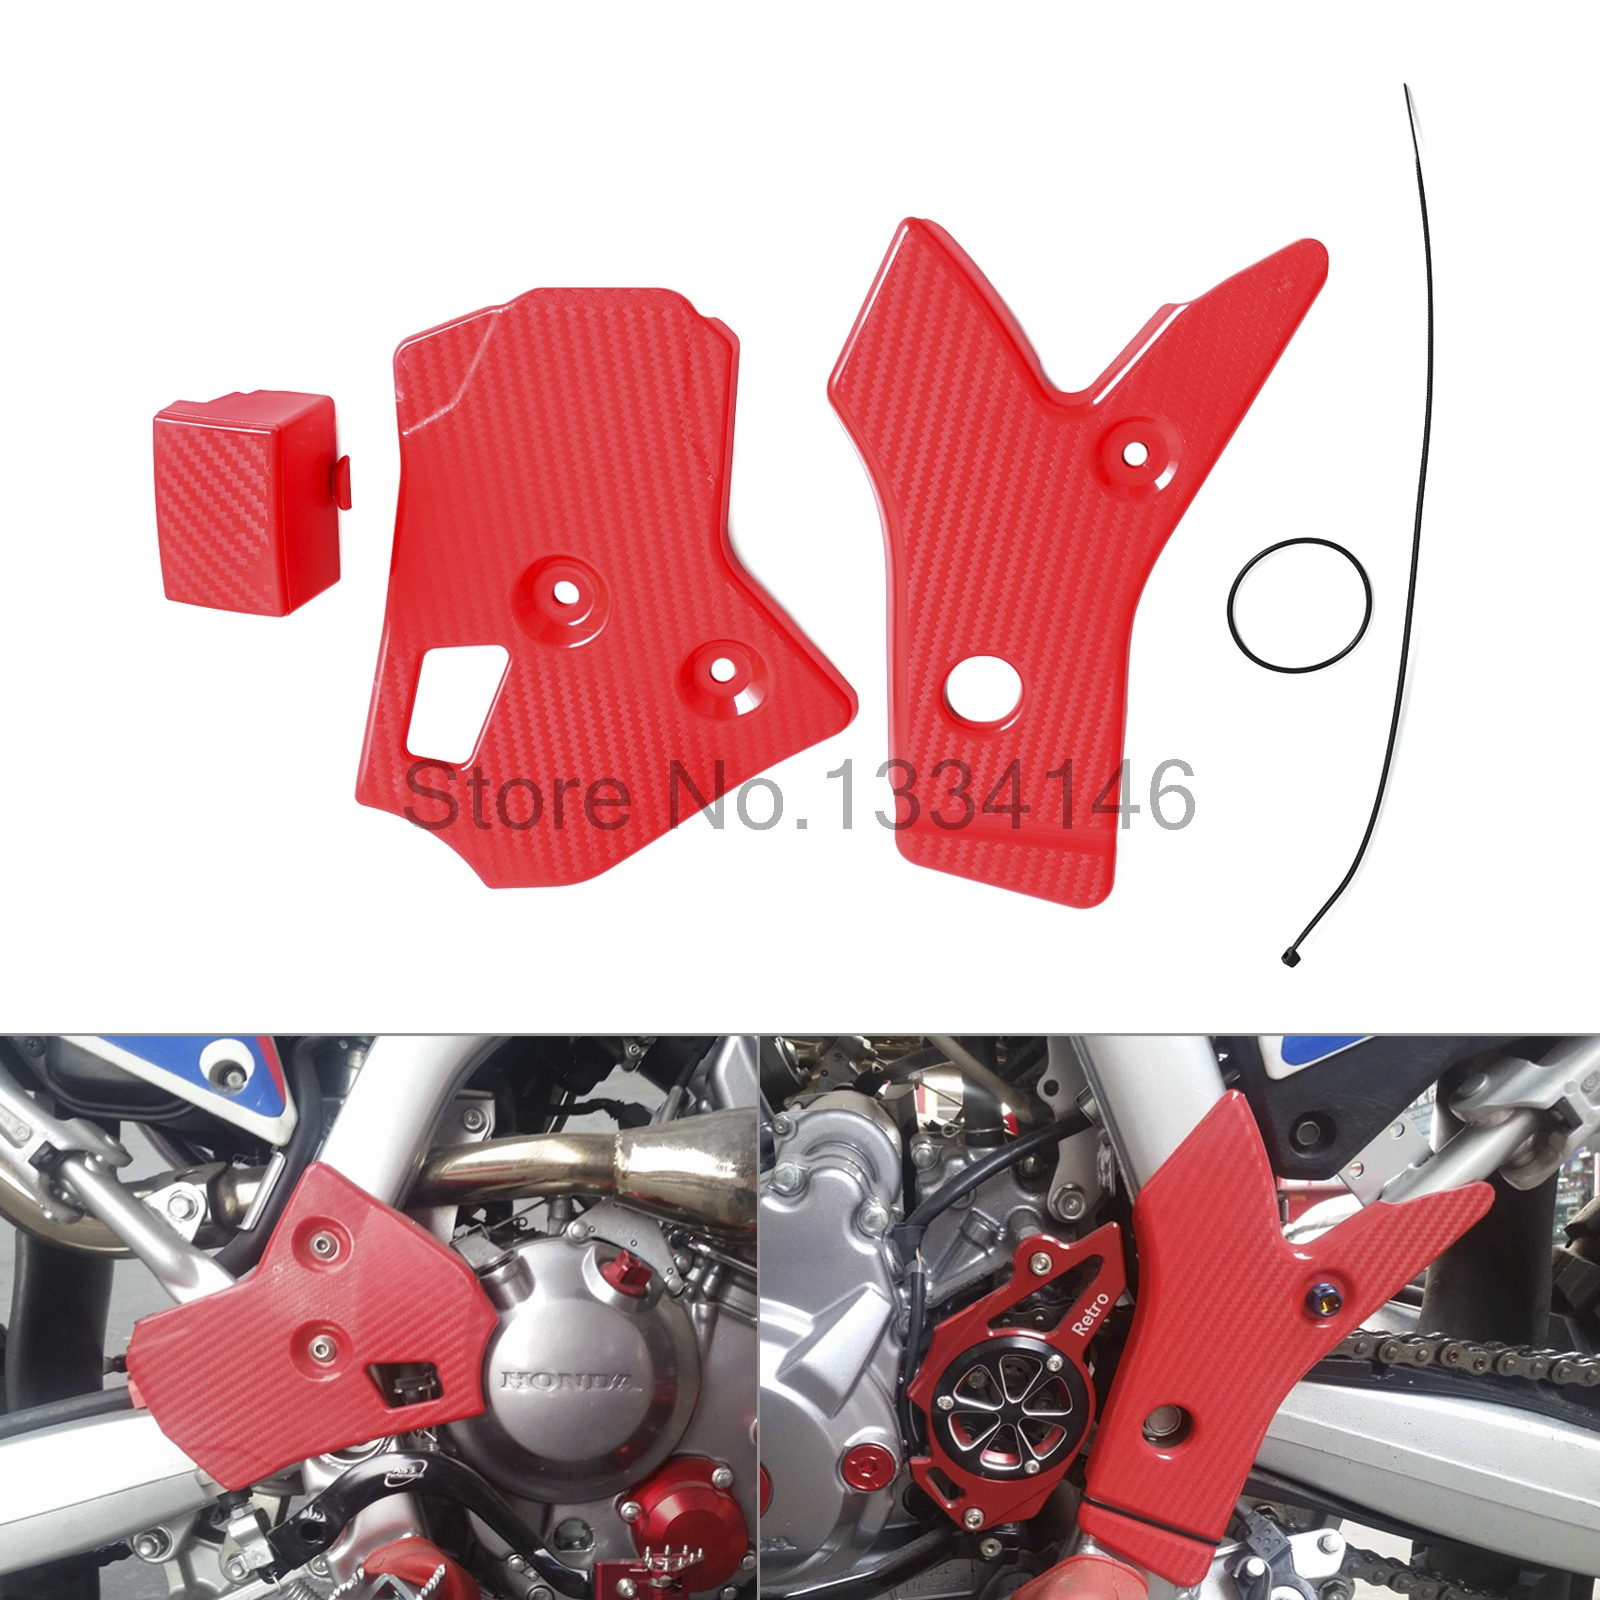 Motorcycle Frame Protector Guard  For Honda CRF250L CRF250M 2012 2013 2014 2015 motorcycle radiator protective cover grill guard grille protector for kawasaki z1000sx ninja 1000 2011 2012 2013 2014 2015 2016